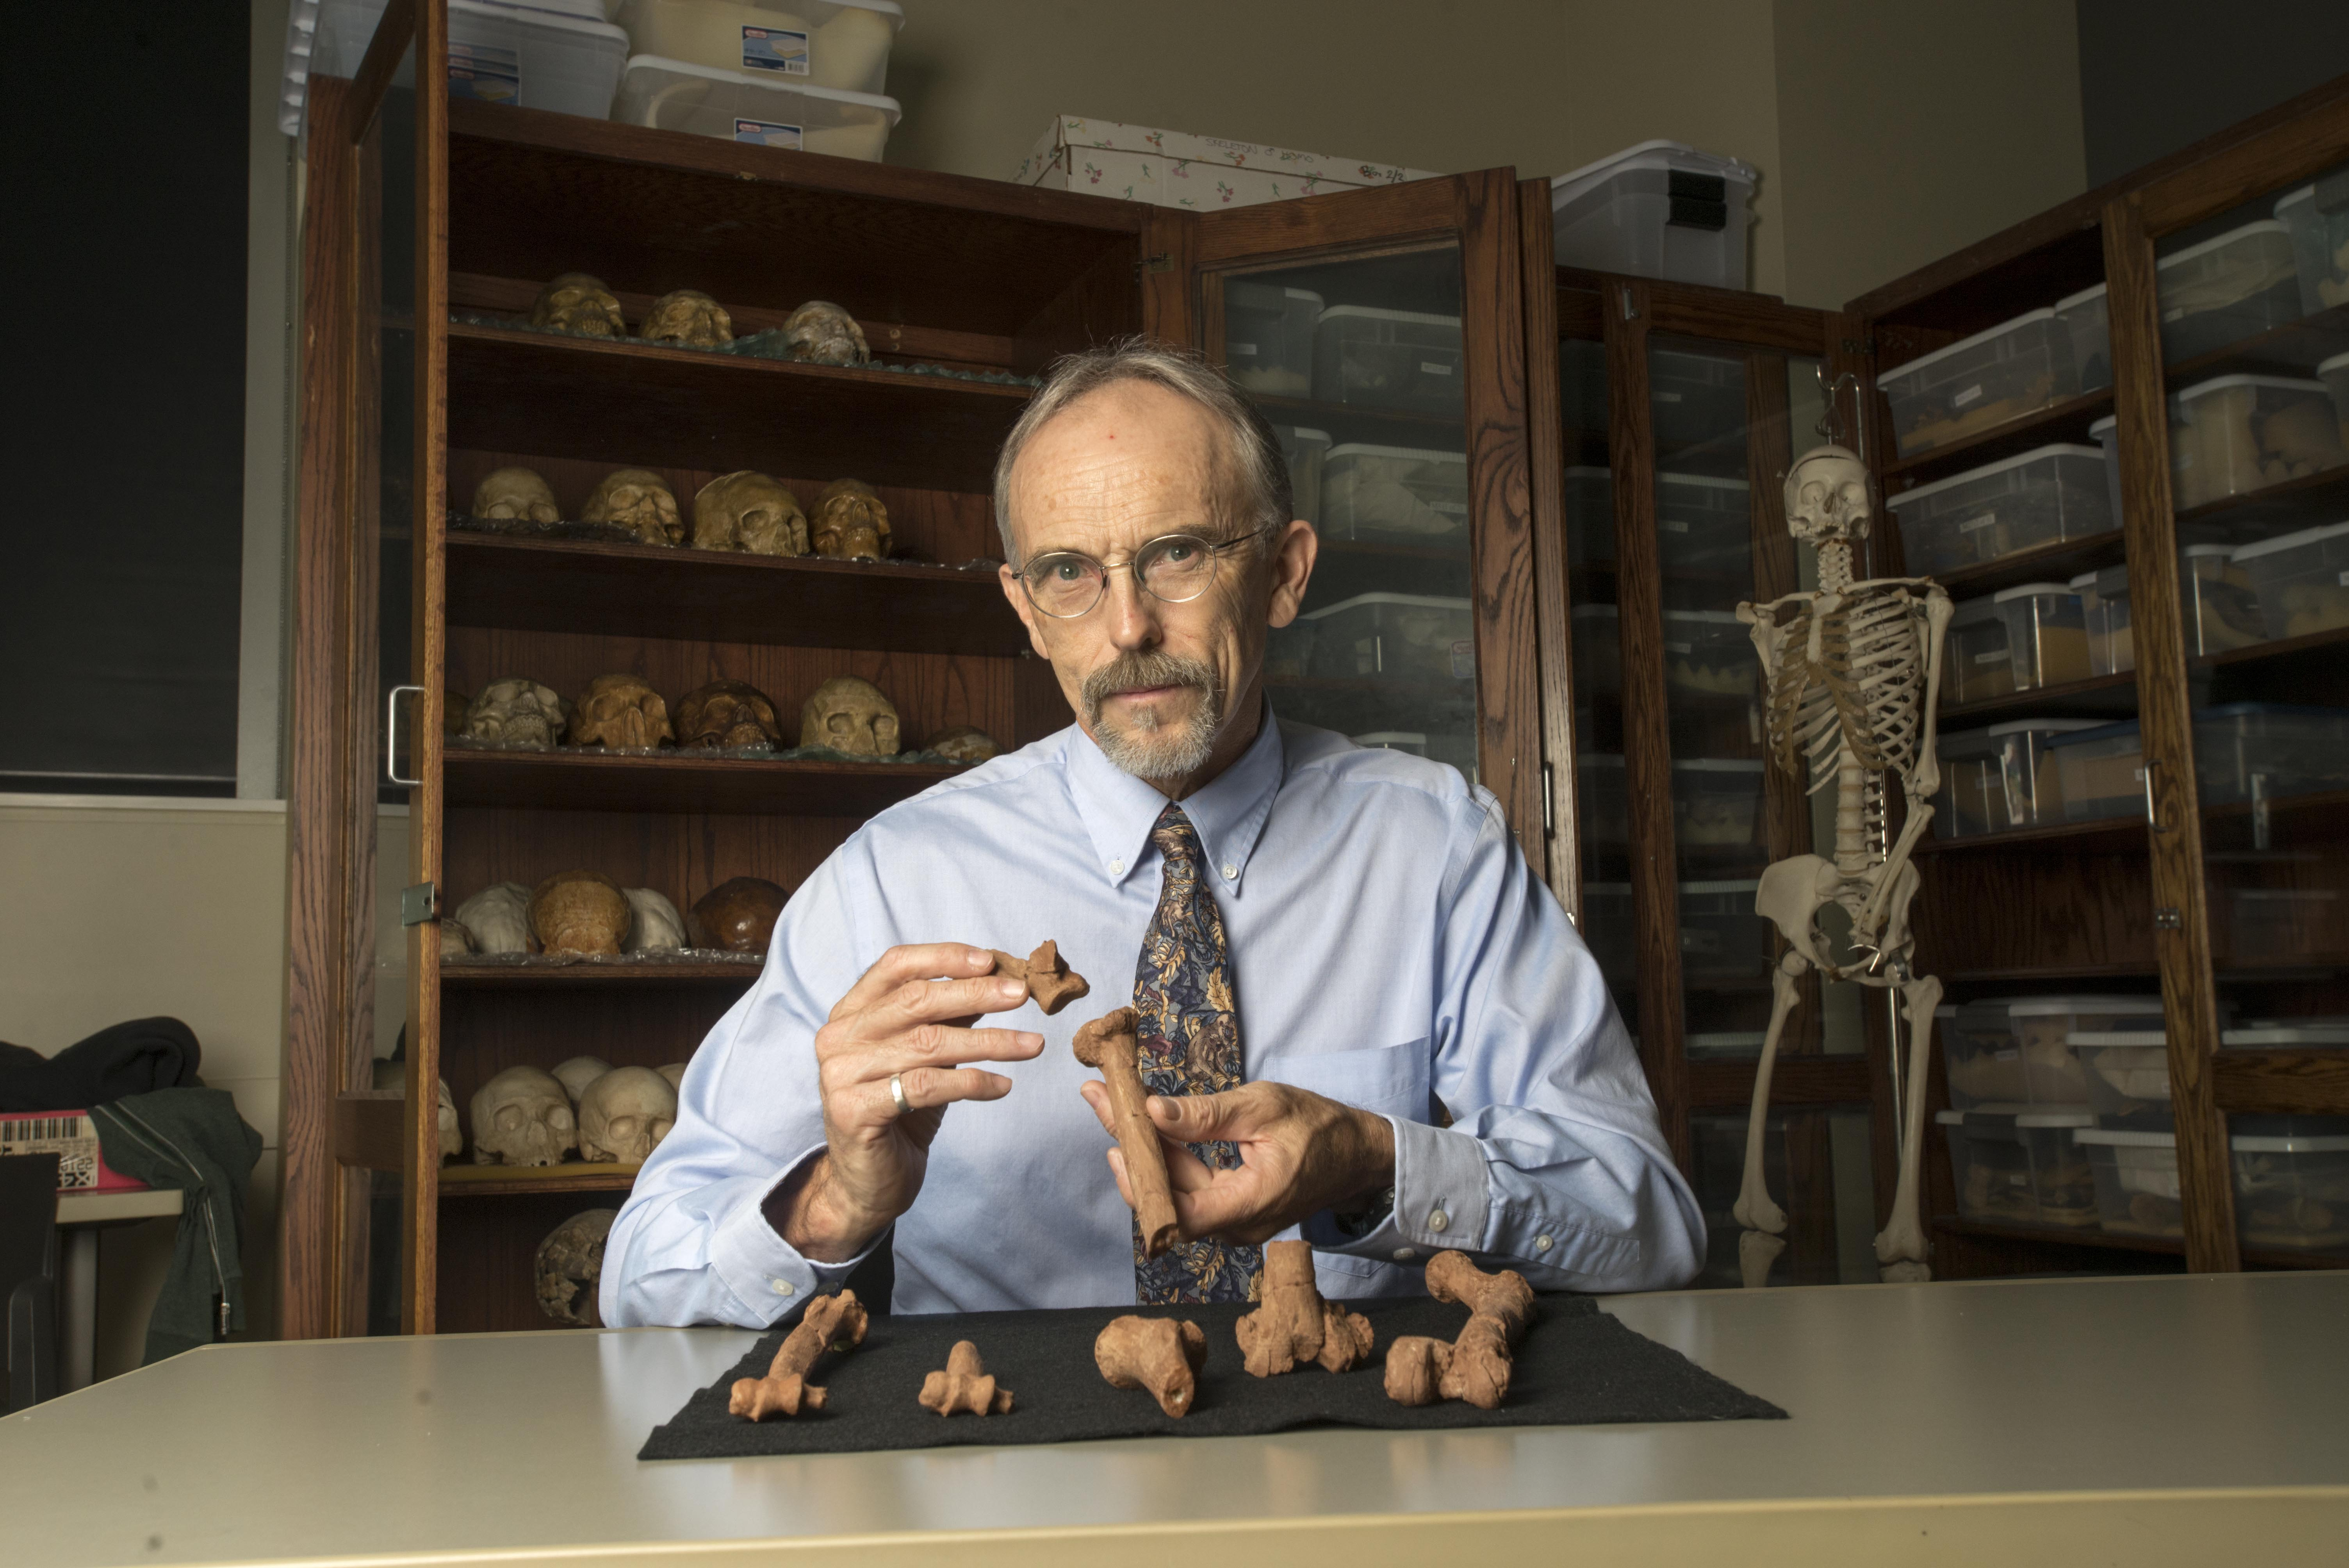 UT Austin professor John Kappelman with 3D printouts of Lucy's skeleton illustrating the compressive fractures in her right humerus that she suffered at the time of her death 3.18 million years ago. Photo by Marsha Miller, UT Austin.